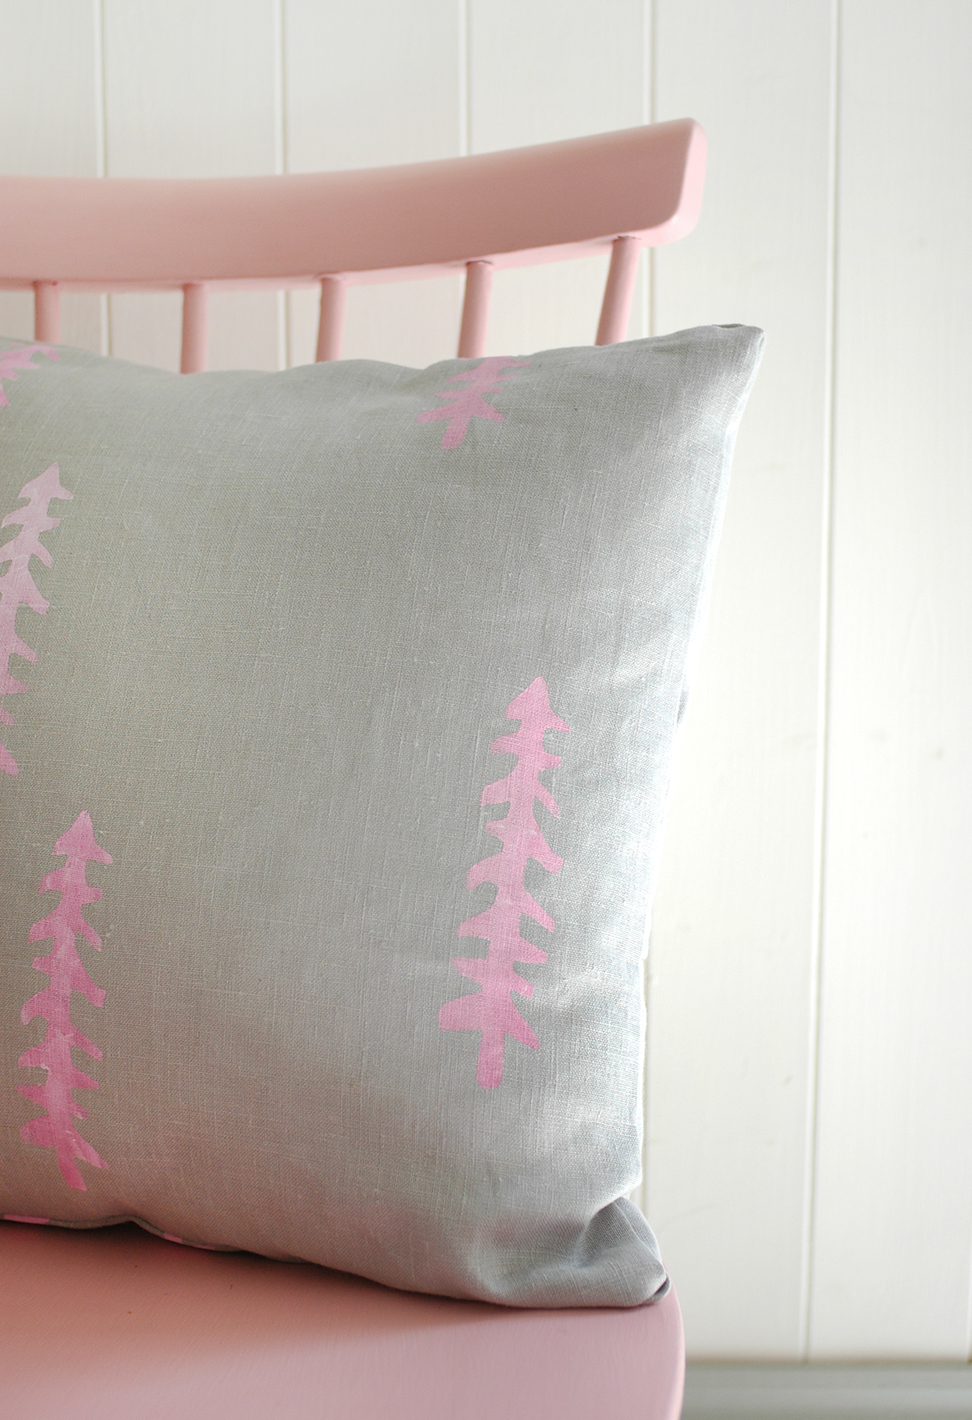 paintedcushion_blog09.jpg